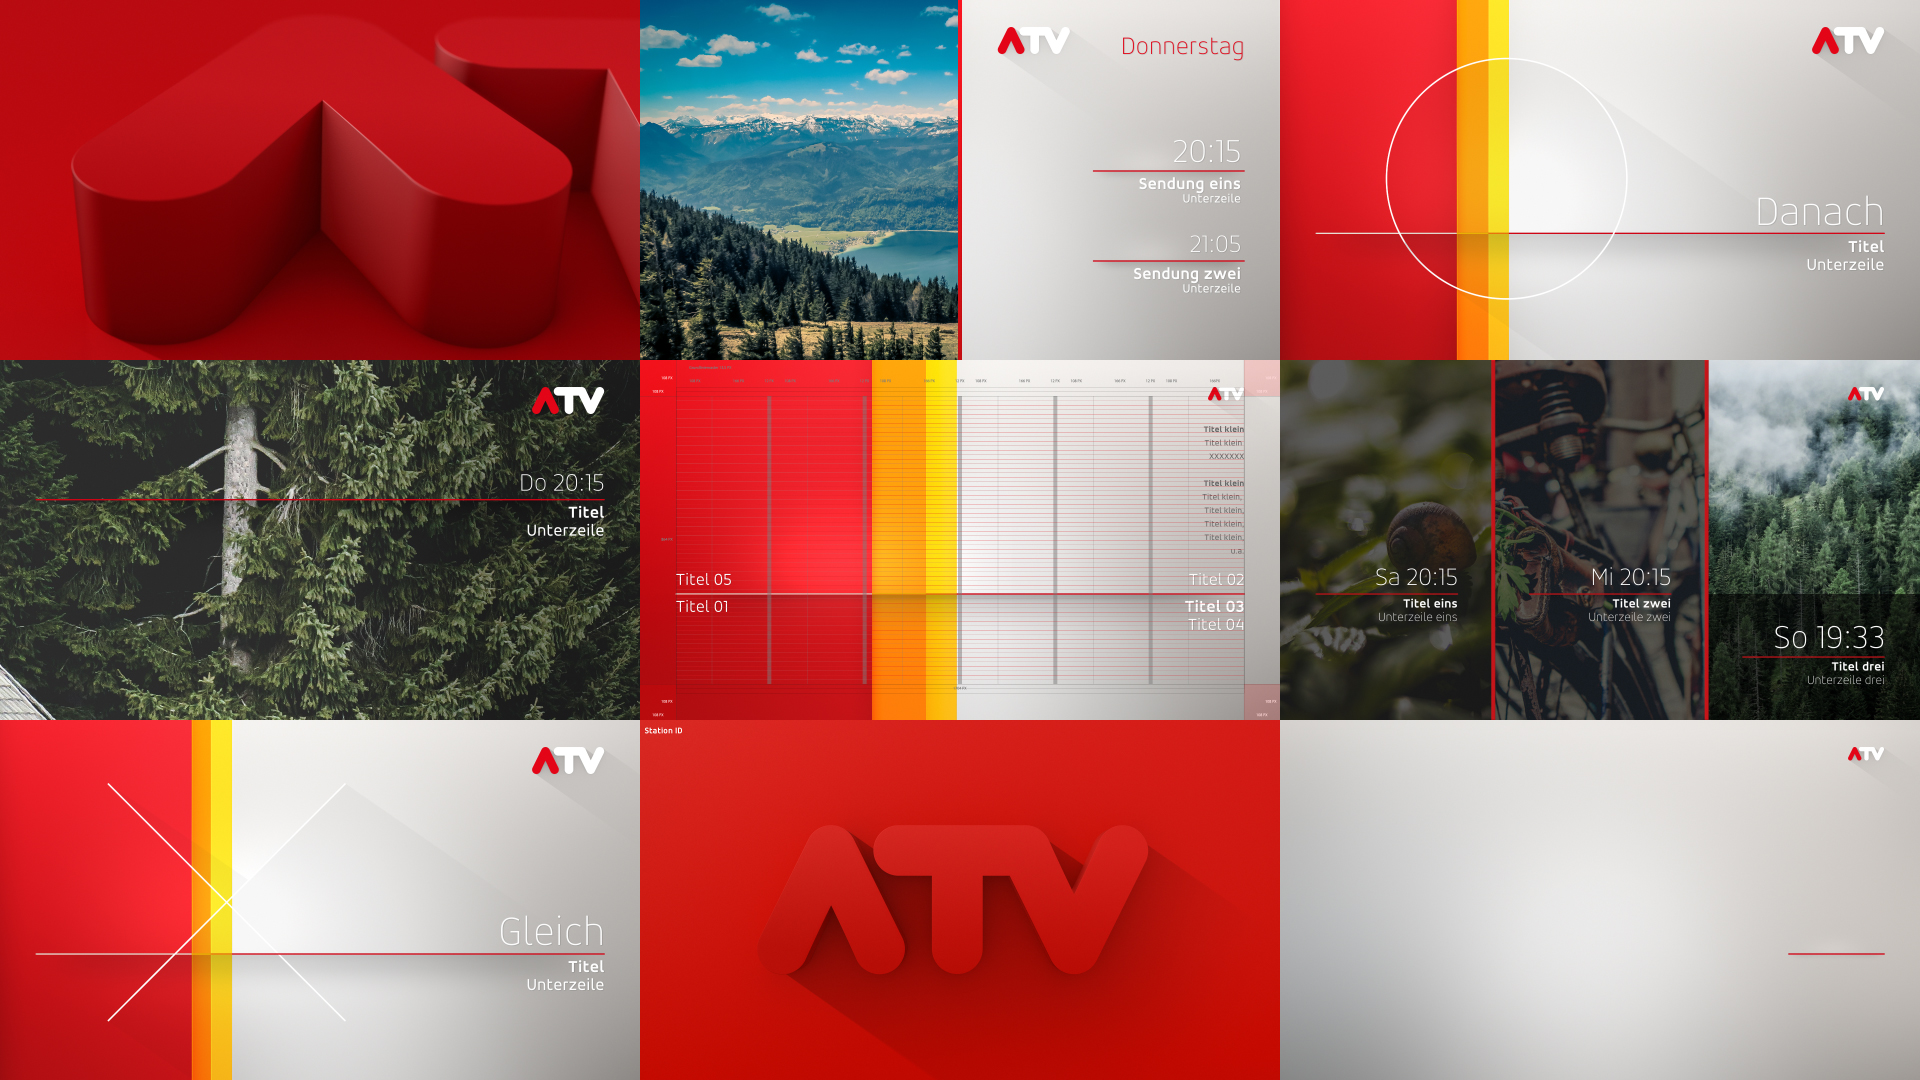 ATV_LAYOUTS_ALL